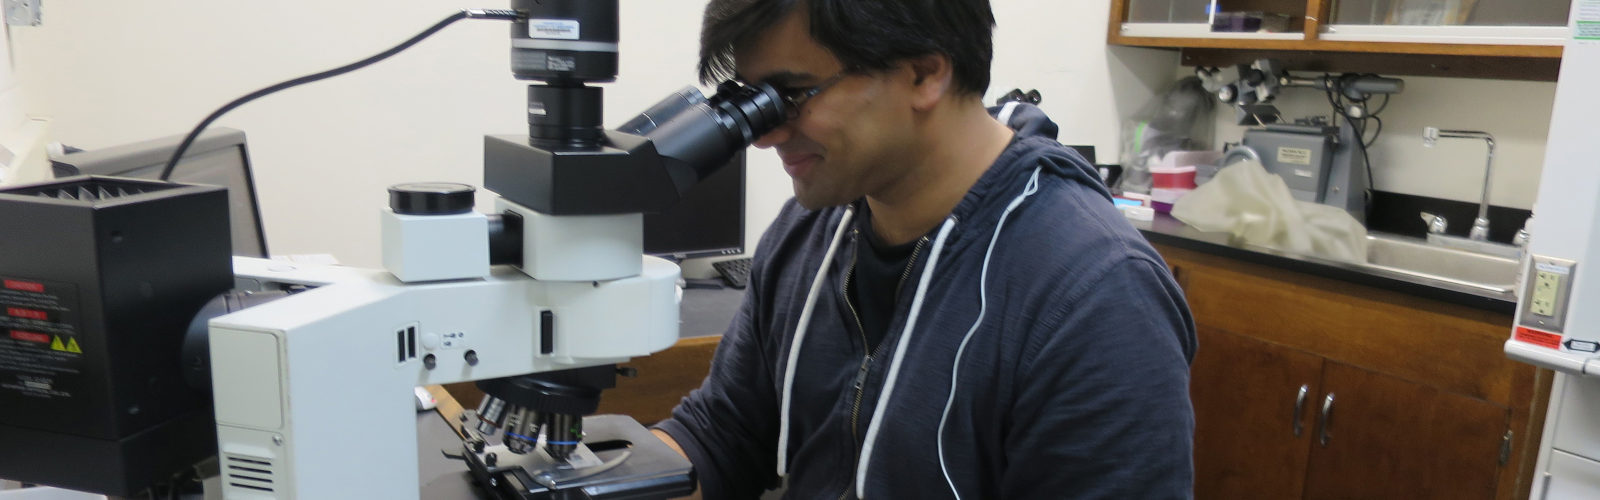 Prashant Sharma using the Olympus epifluorescence scope in the NIC.